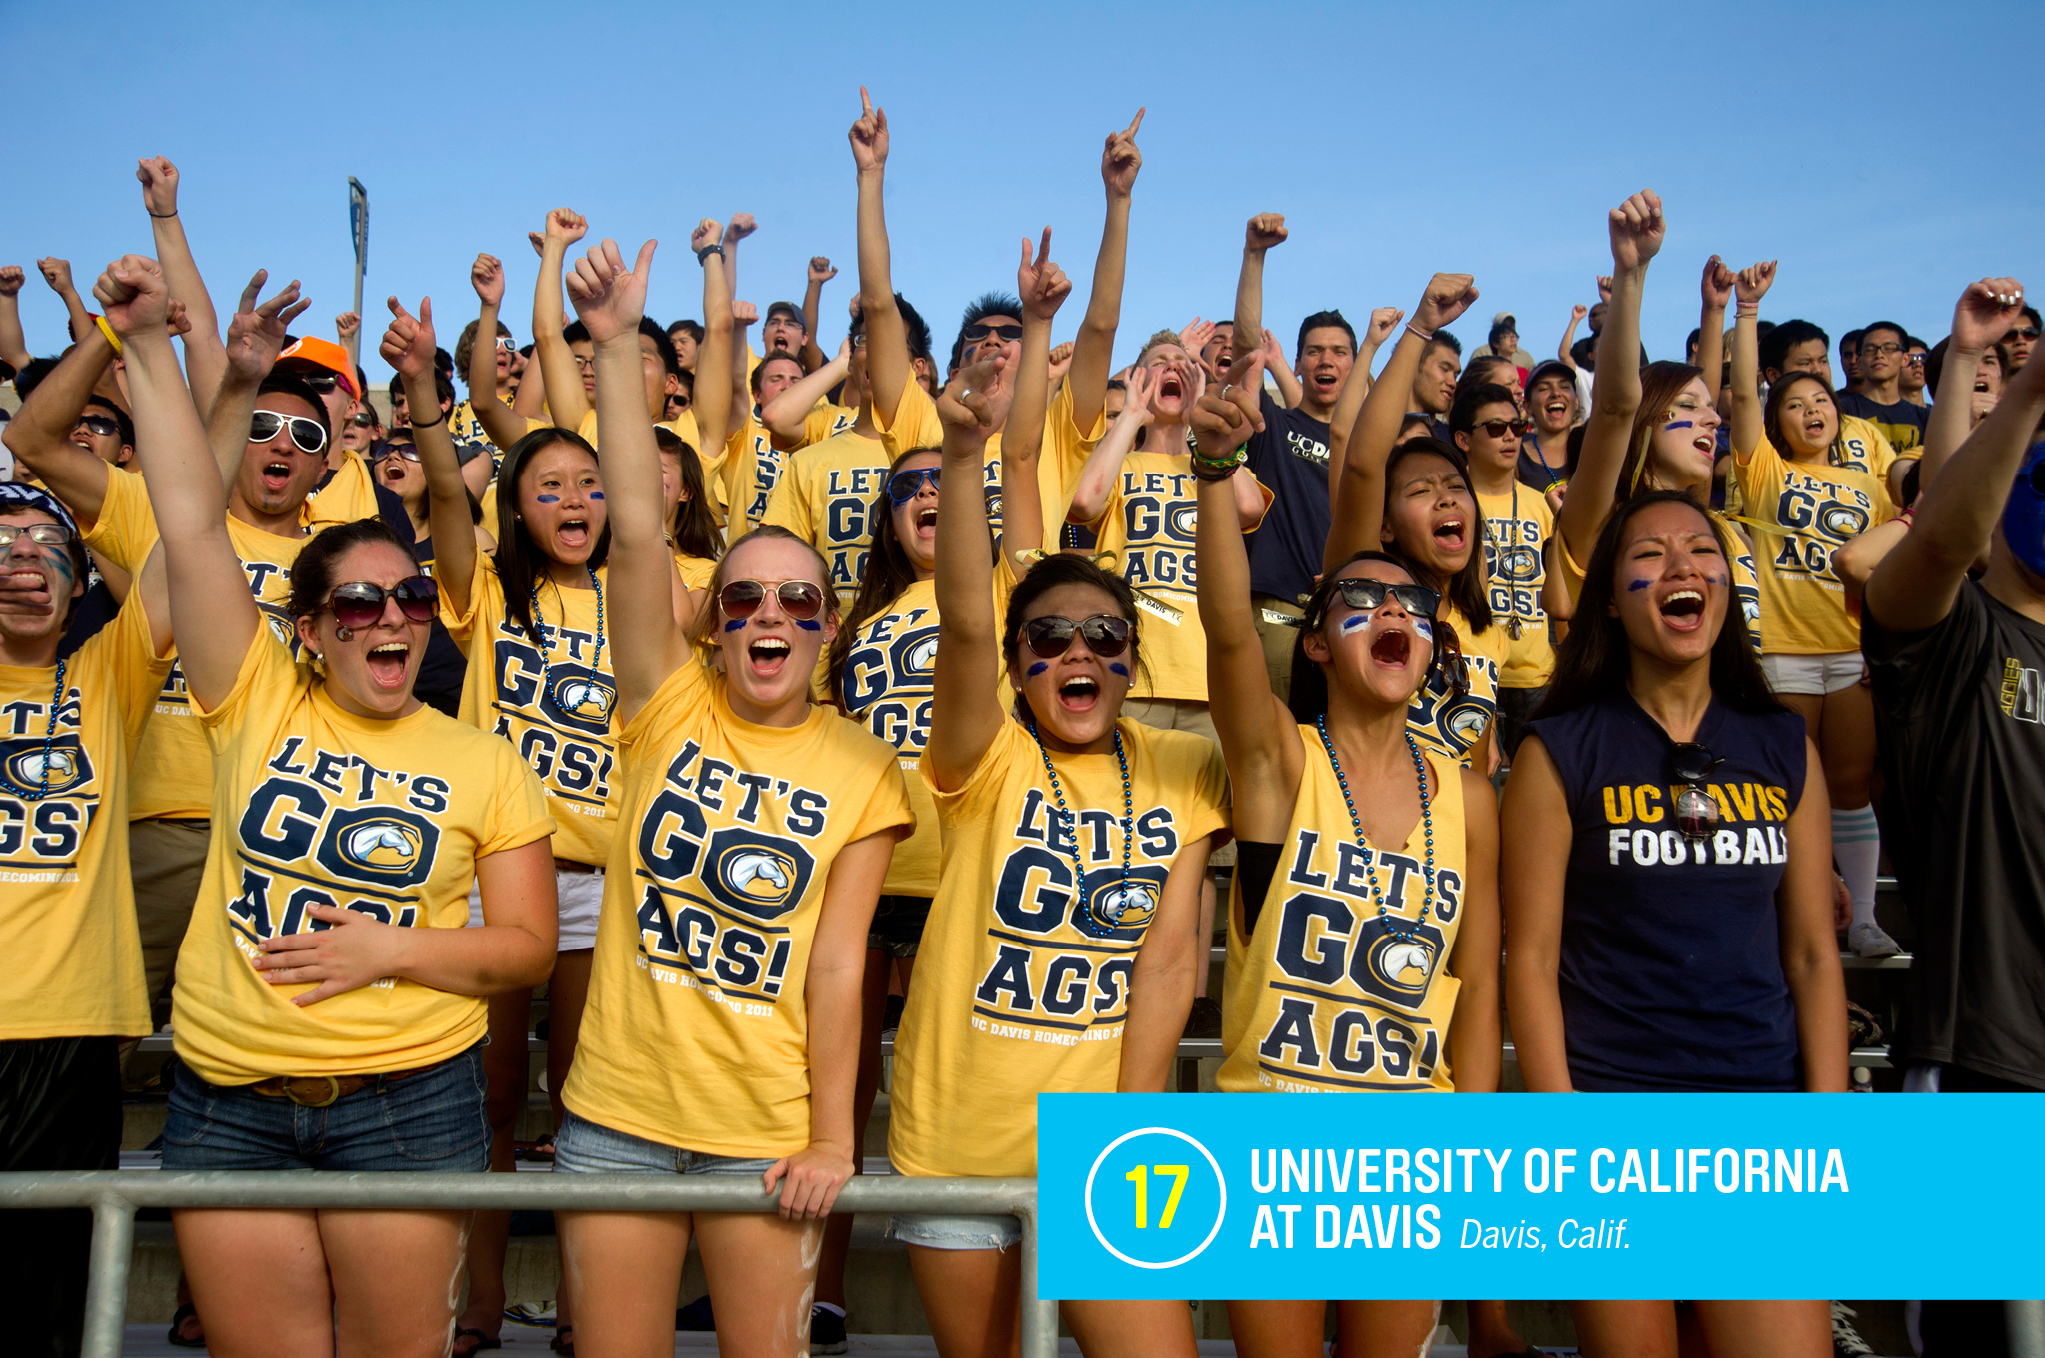 """<a href=""""https://money.com/best-colleges/profile/university-of-california-davis/"""" target=""""_blank"""">UC–Davis</a> has made a reputation as an affordable school that produces results. About 43% of students are low-income, but its six-year graduation rate is a high 83%. The school is best known for its agriculture and animal science specialties. <a href=""""https://money.com/best-colleges/profile/university-of-california-davis/"""" target=""""_blank"""">FULL PROFILE</a>"""